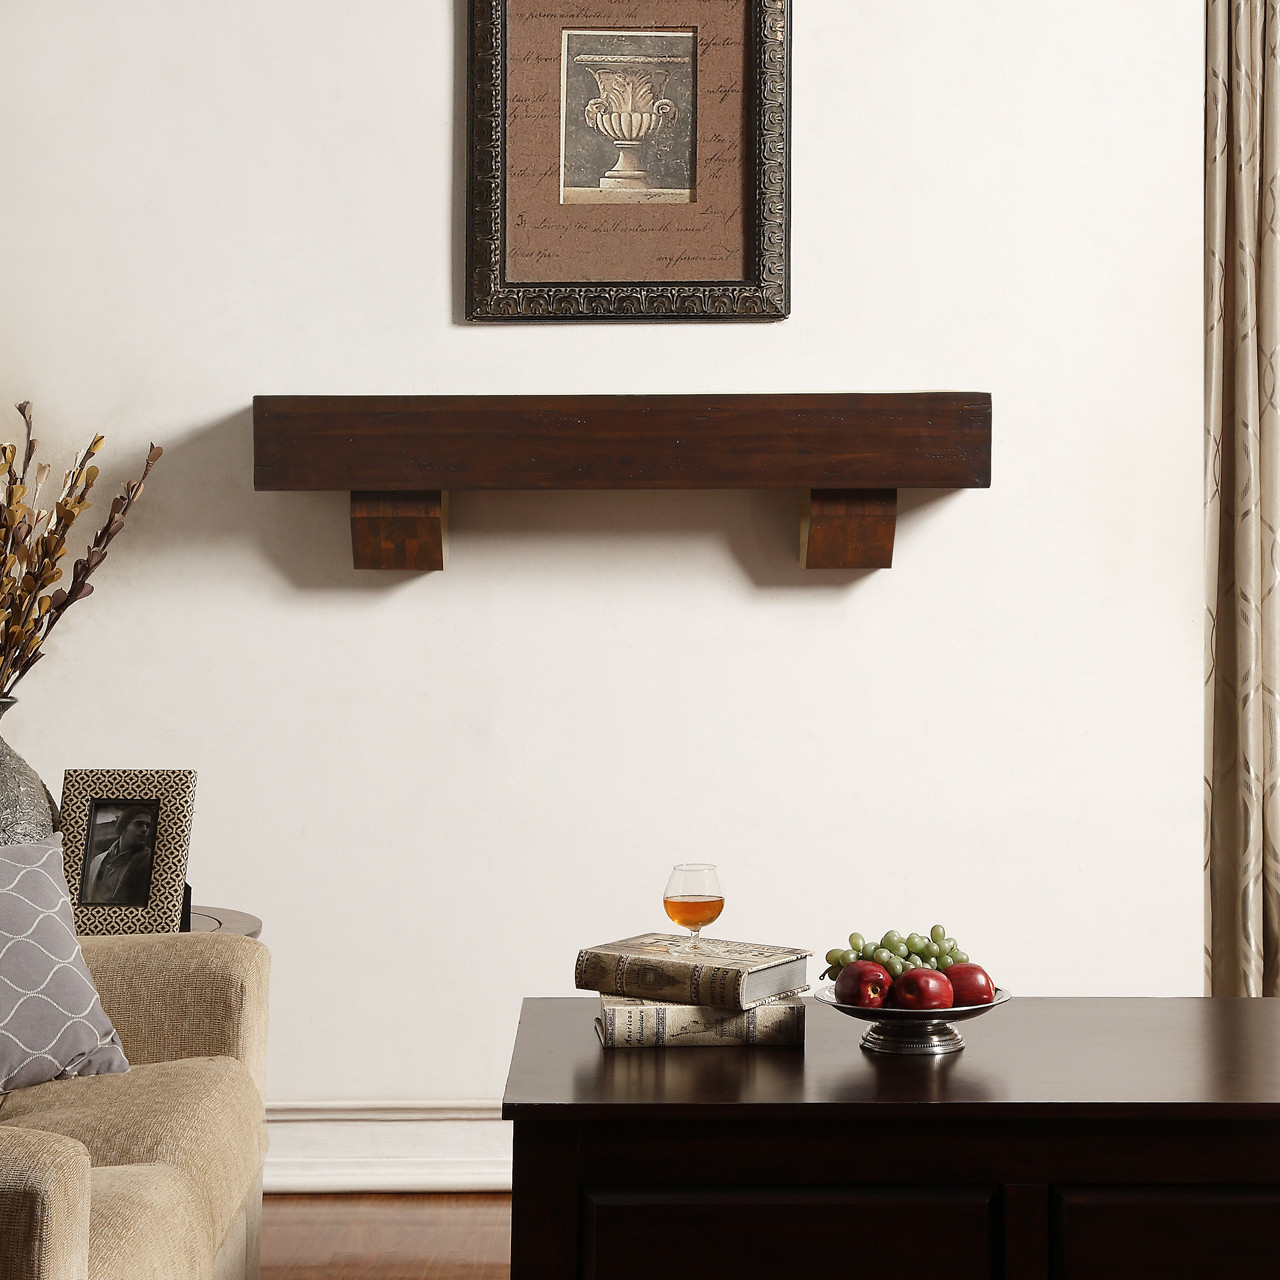 Duluth Forge 48 Inch Fireplace Shelf Mantel With Corbels Chocolate